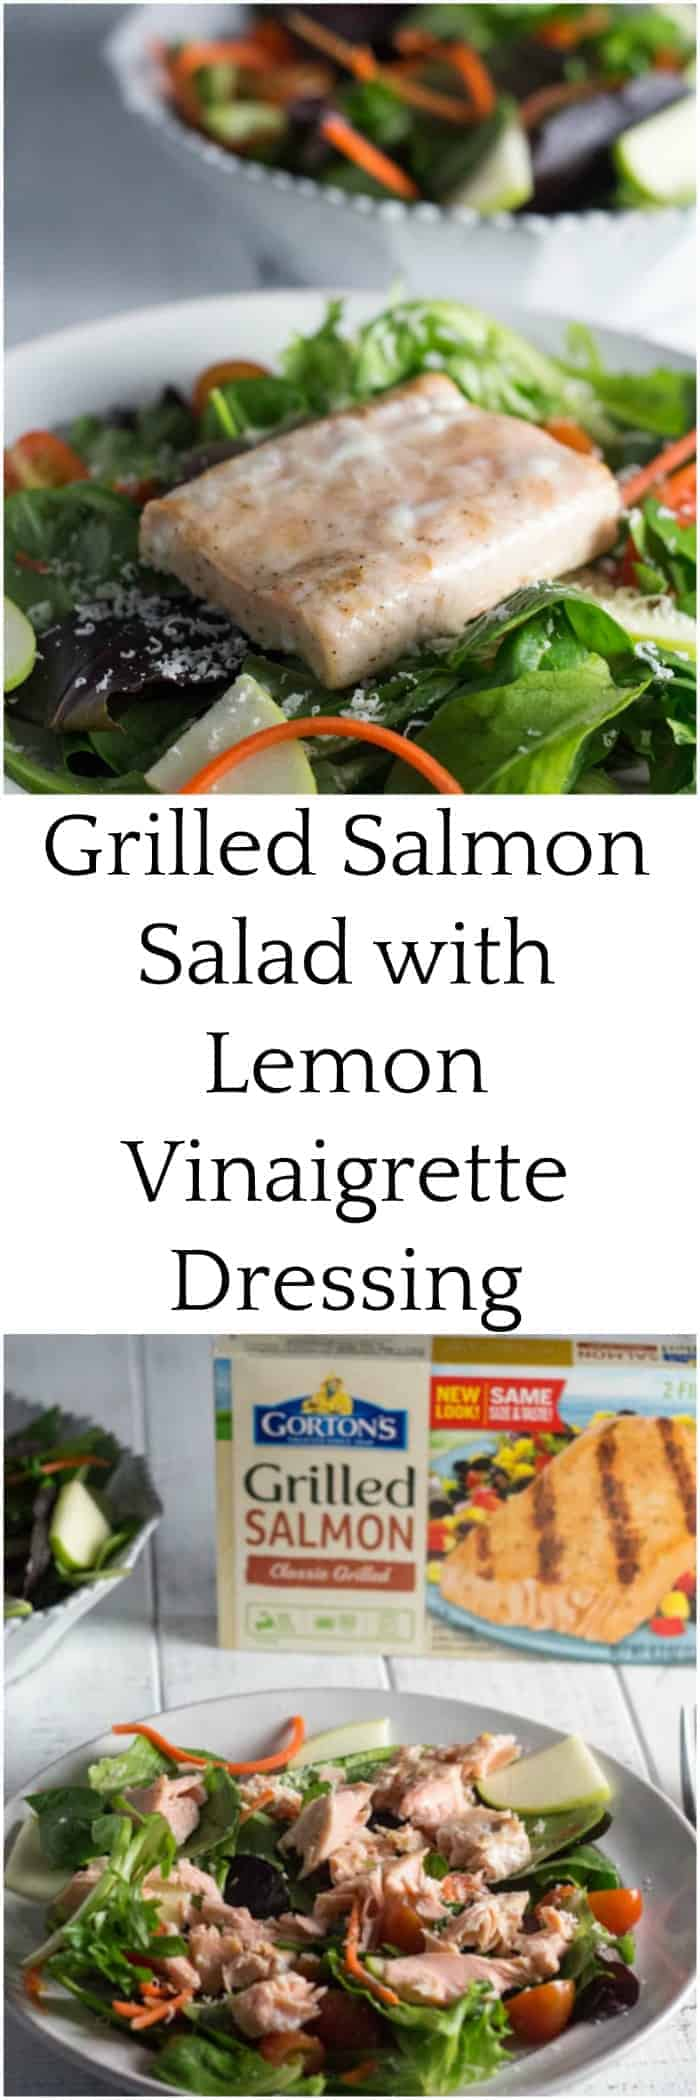 For those busy weeknights, wow your family with this easy grilled salmon salad with lemon vinaigrette dressing using @GortonsSeafood. It takes less than 20 minutes to put it all together, and most of the work can be done while the salmon cooks in the oven. This recipe is only 6 SmartPoints on Weight Watchers Freestyle program. #TrustGortons